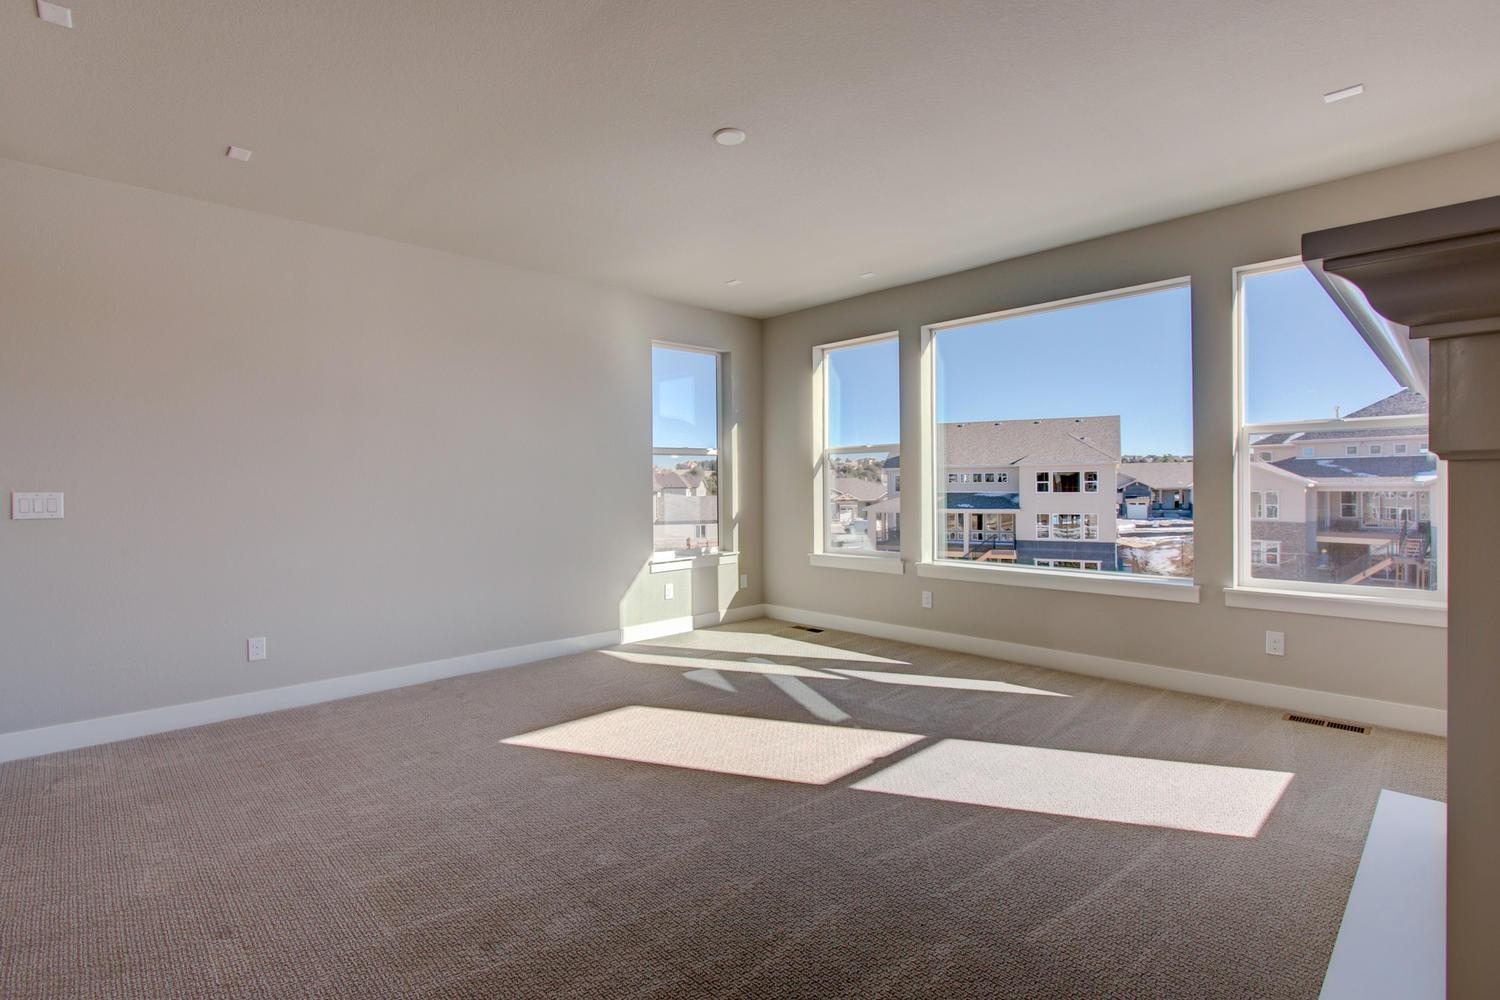 Additional photo for property listing at Residence 6004 8162 S Langdale Way Aurora, Colorado 80016 United States